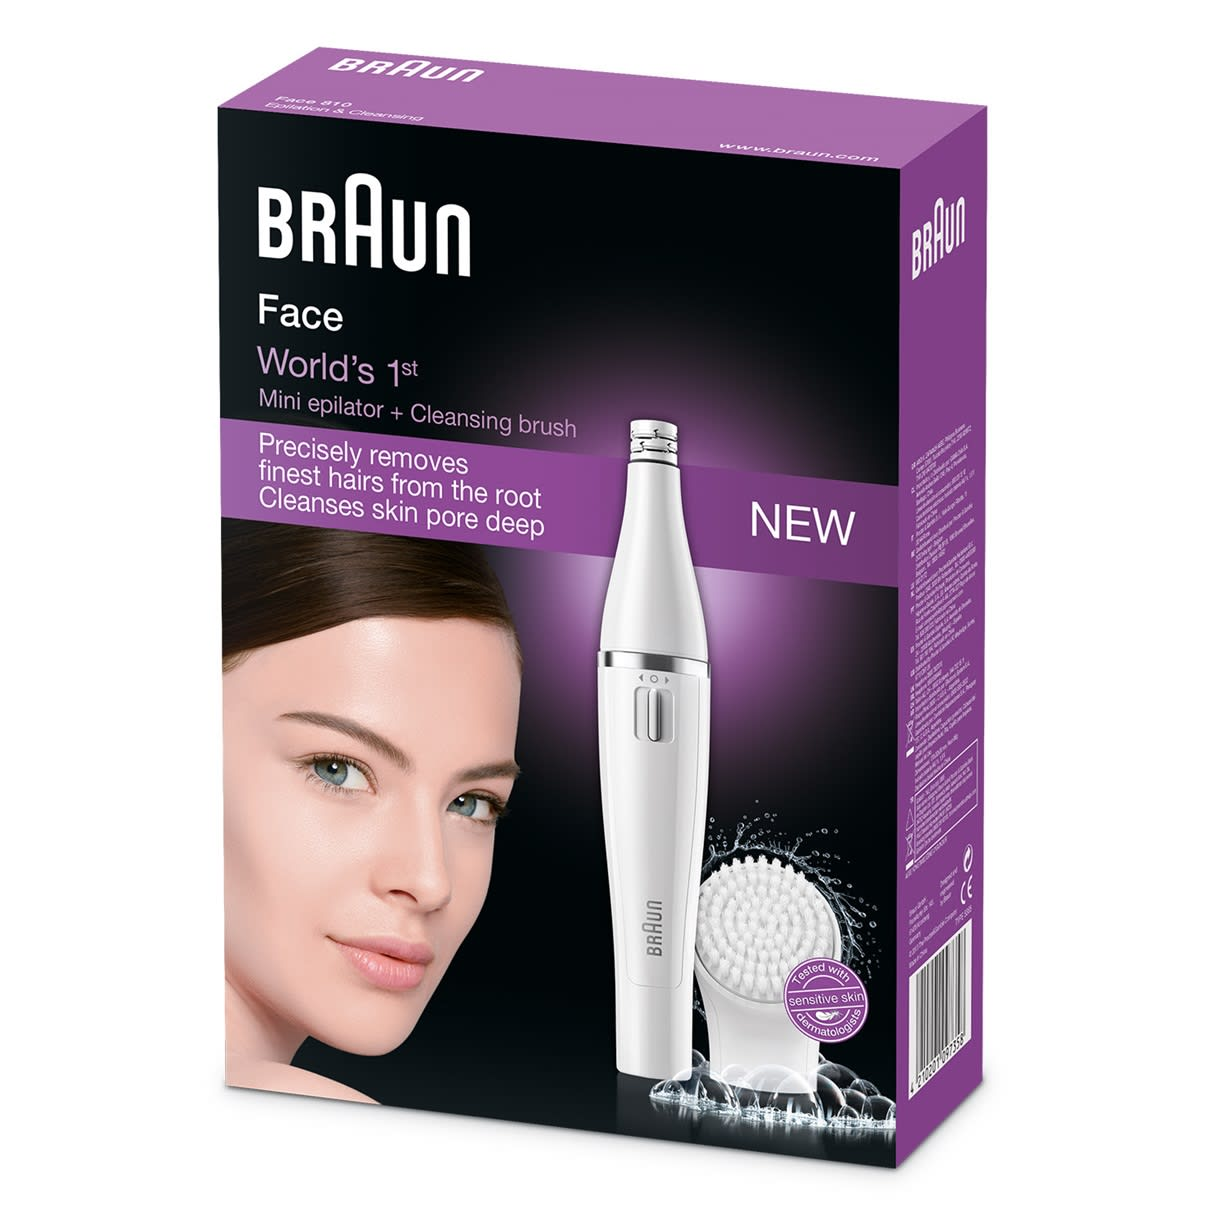 Braun Face Epilator 810 Facial Cleansing Brush Braun Uk